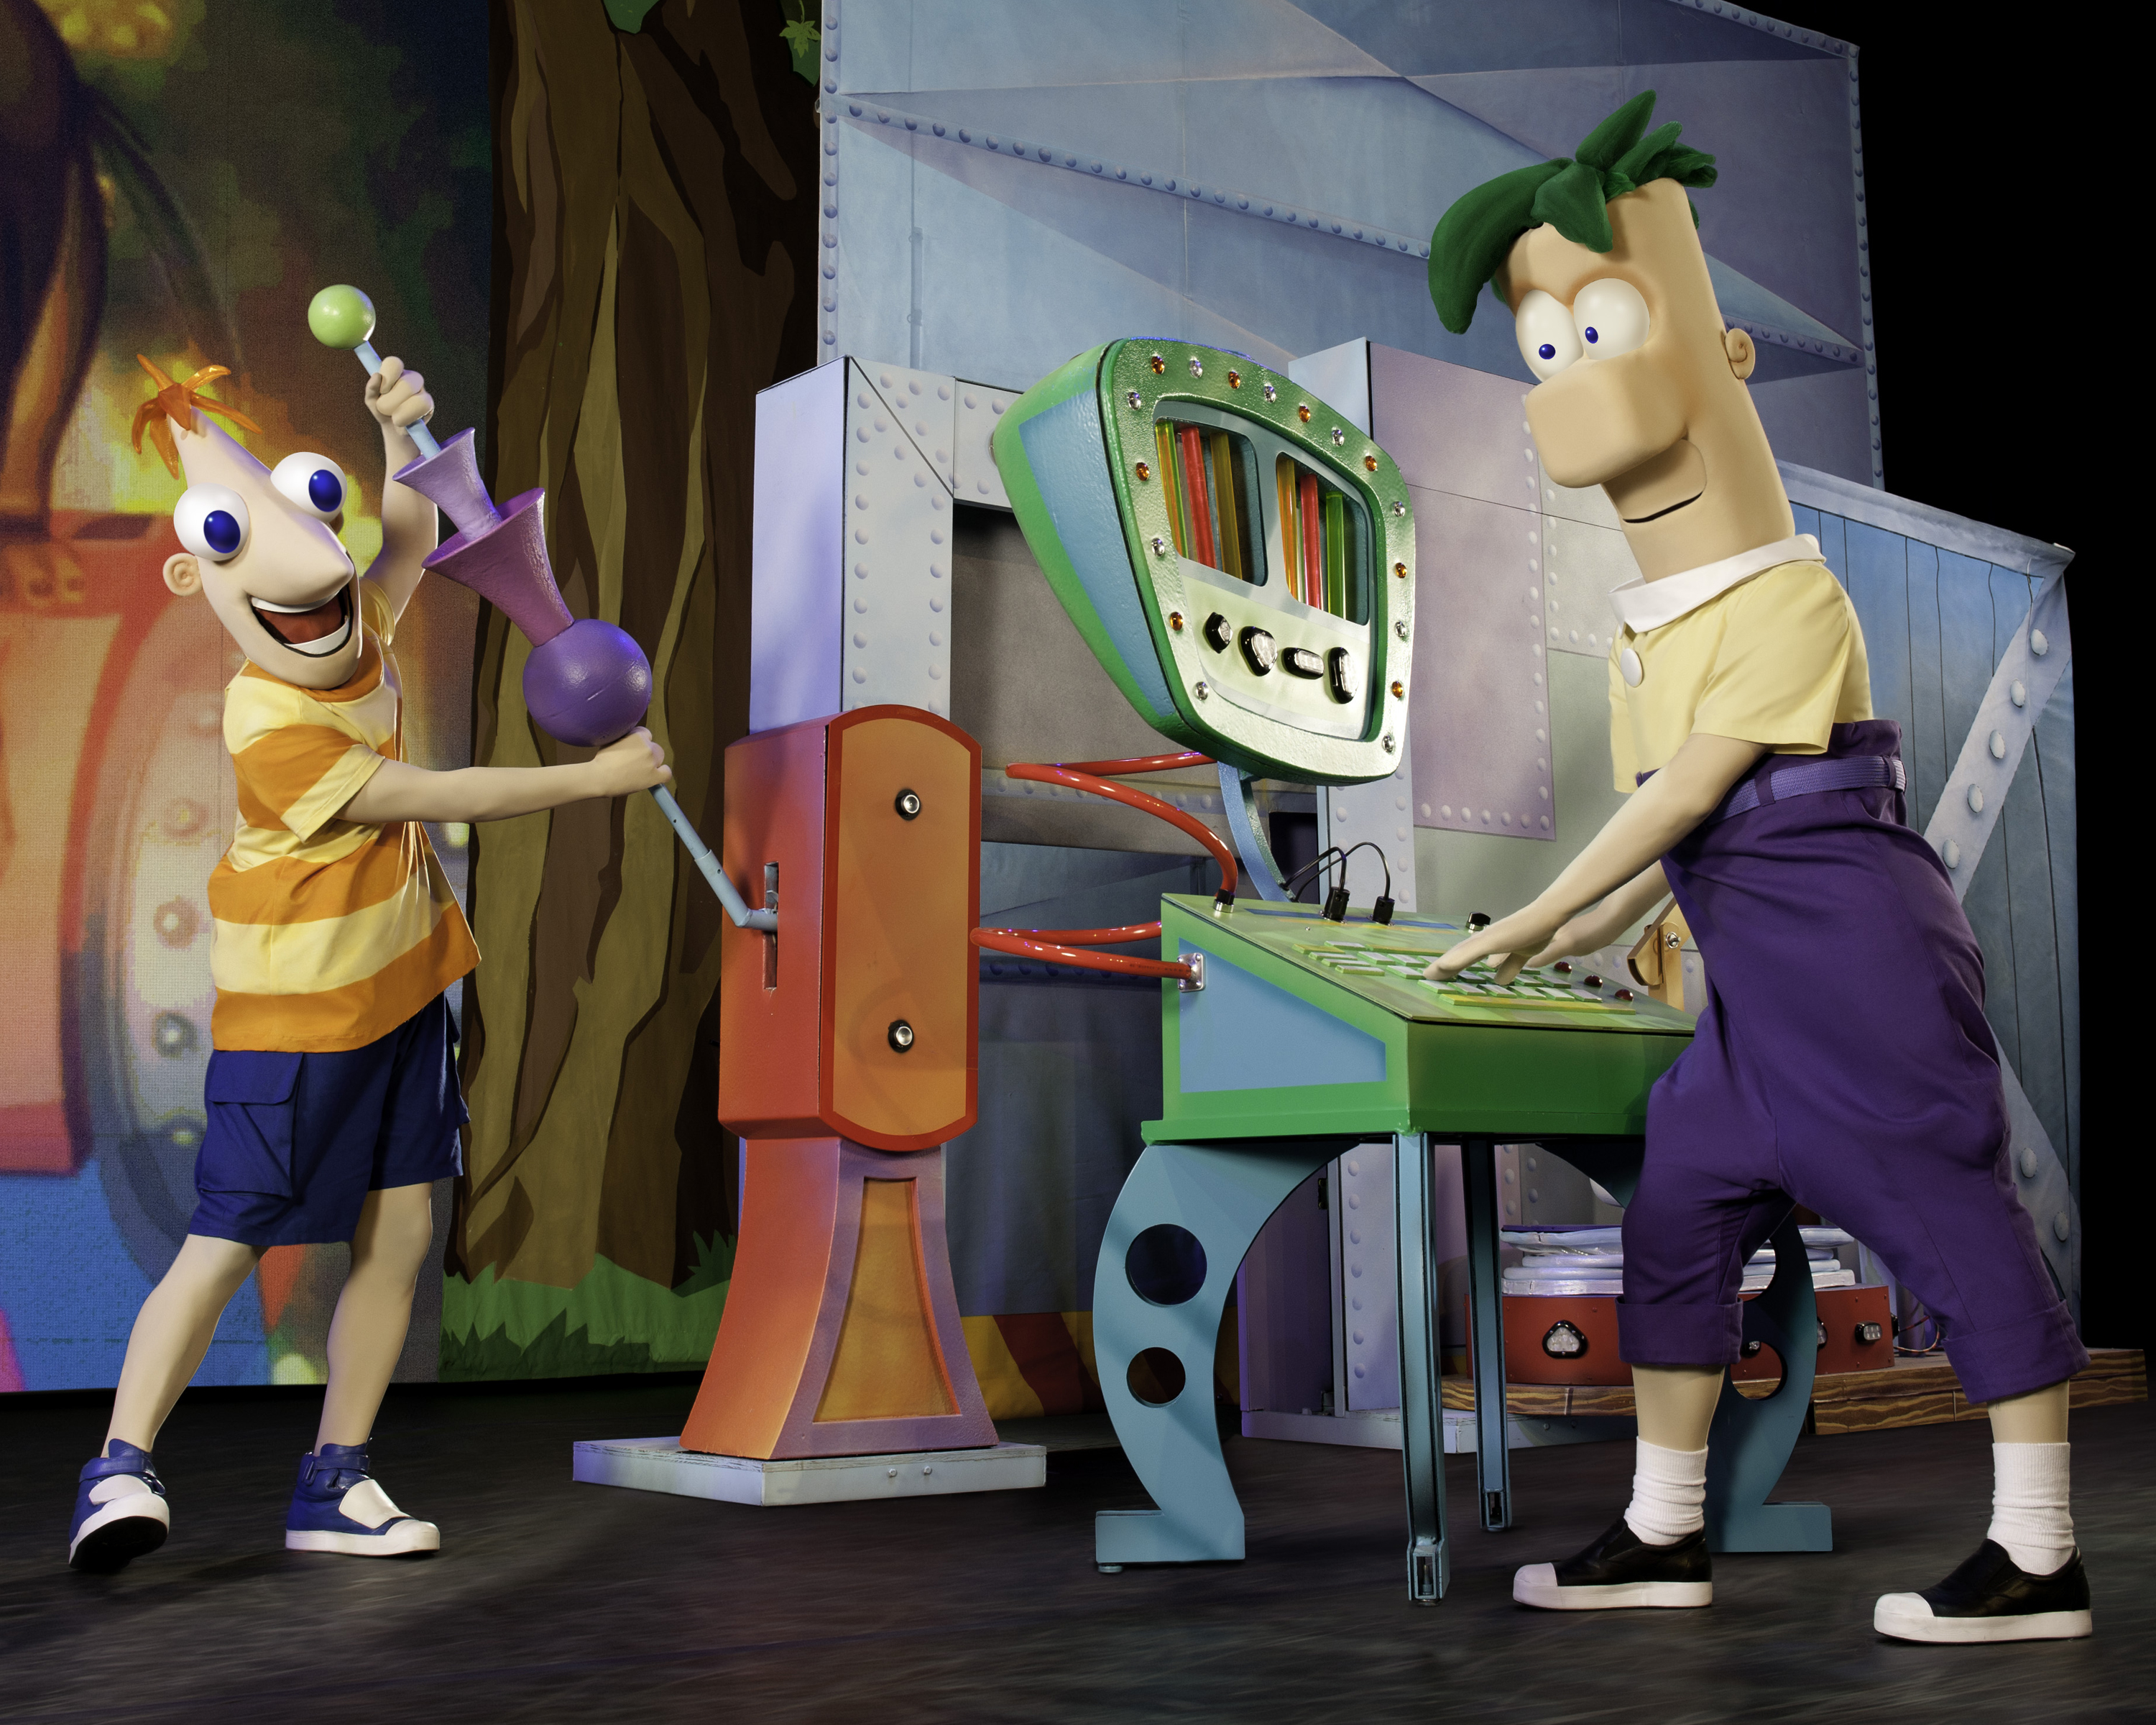 Phineas and Ferb Live – The show must go on!